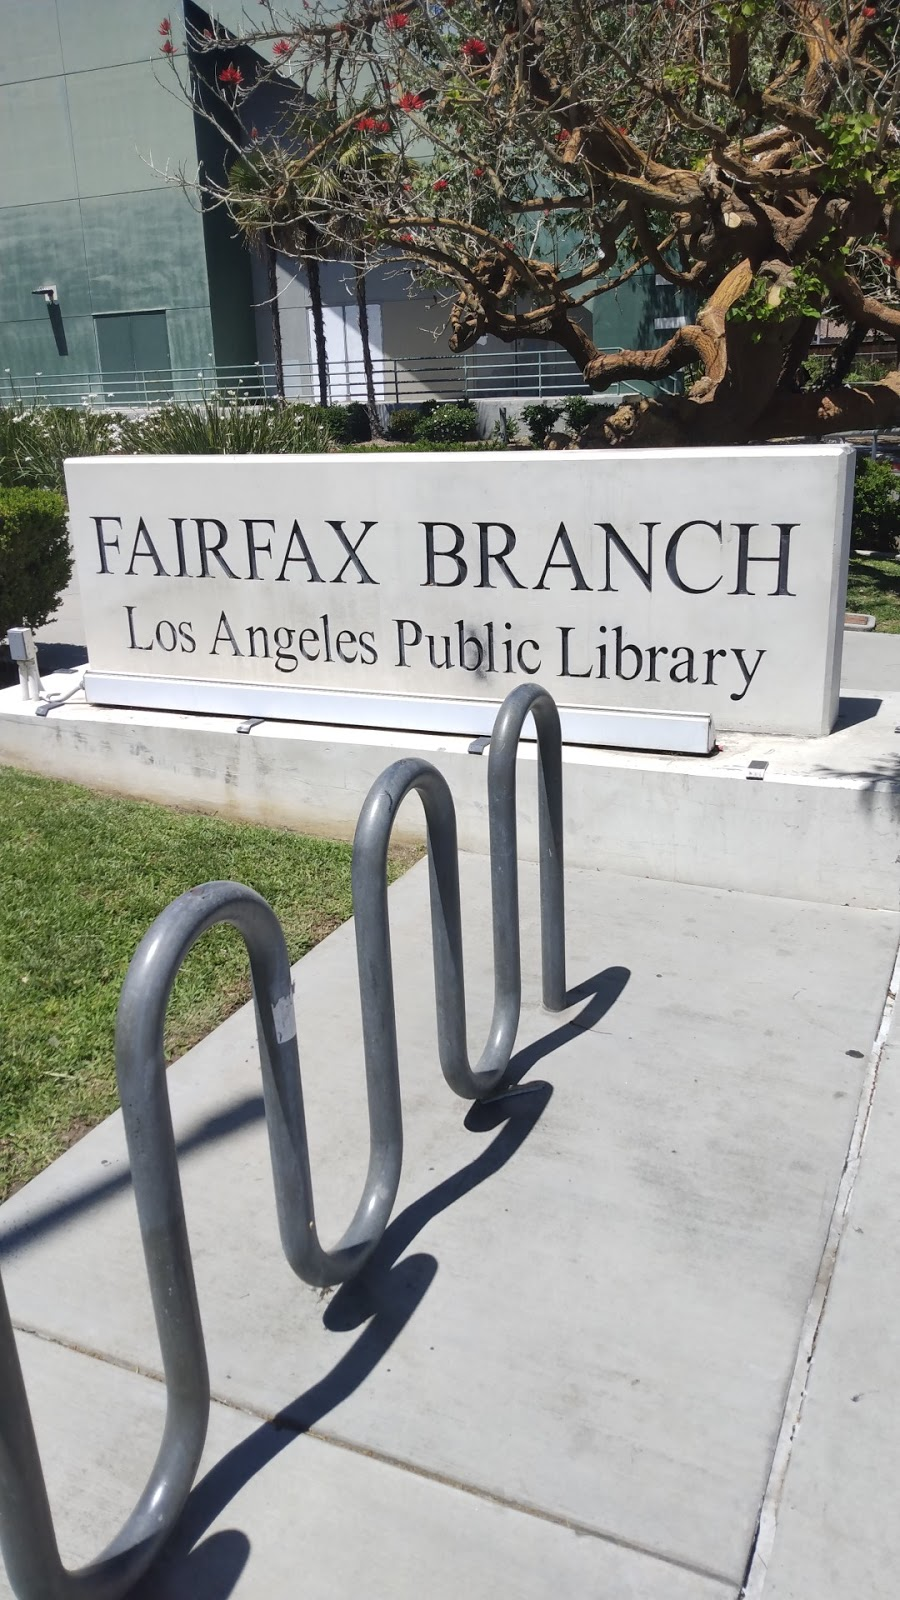 Fairfax Branch Library - library  | Photo 4 of 10 | Address: 161 S Gardner St, Los Angeles, CA 90036, USA | Phone: (323) 936-6191